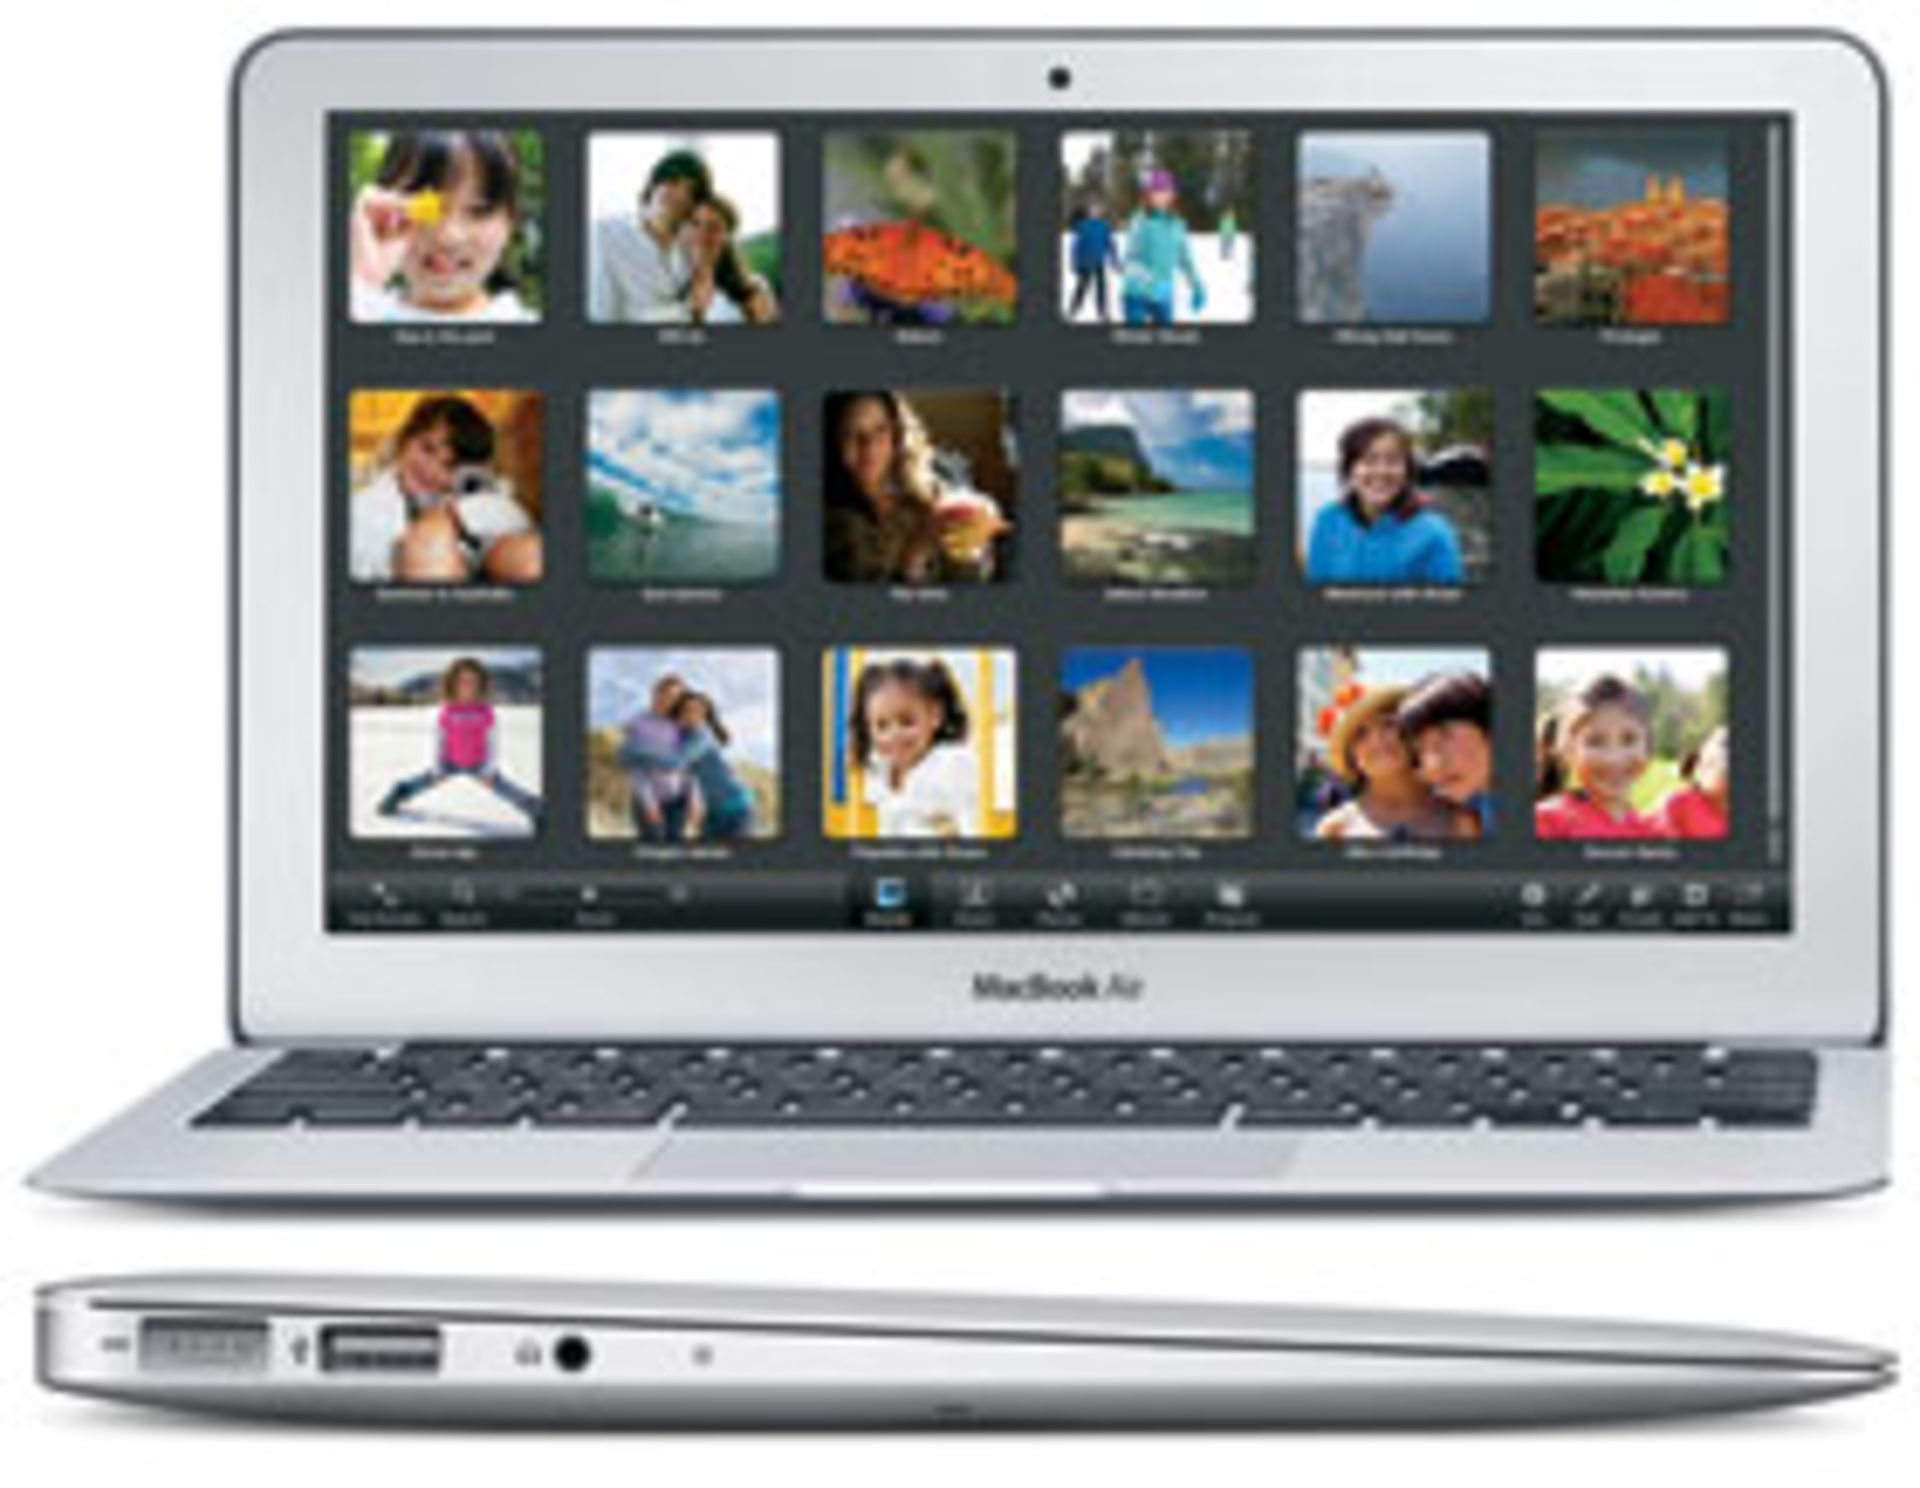 Lot 60007 - V Grade B Macbook Air 11.6 Inch Core 2 Duo - 64GB SSD - A1370 - Available Approx 7 Working Days